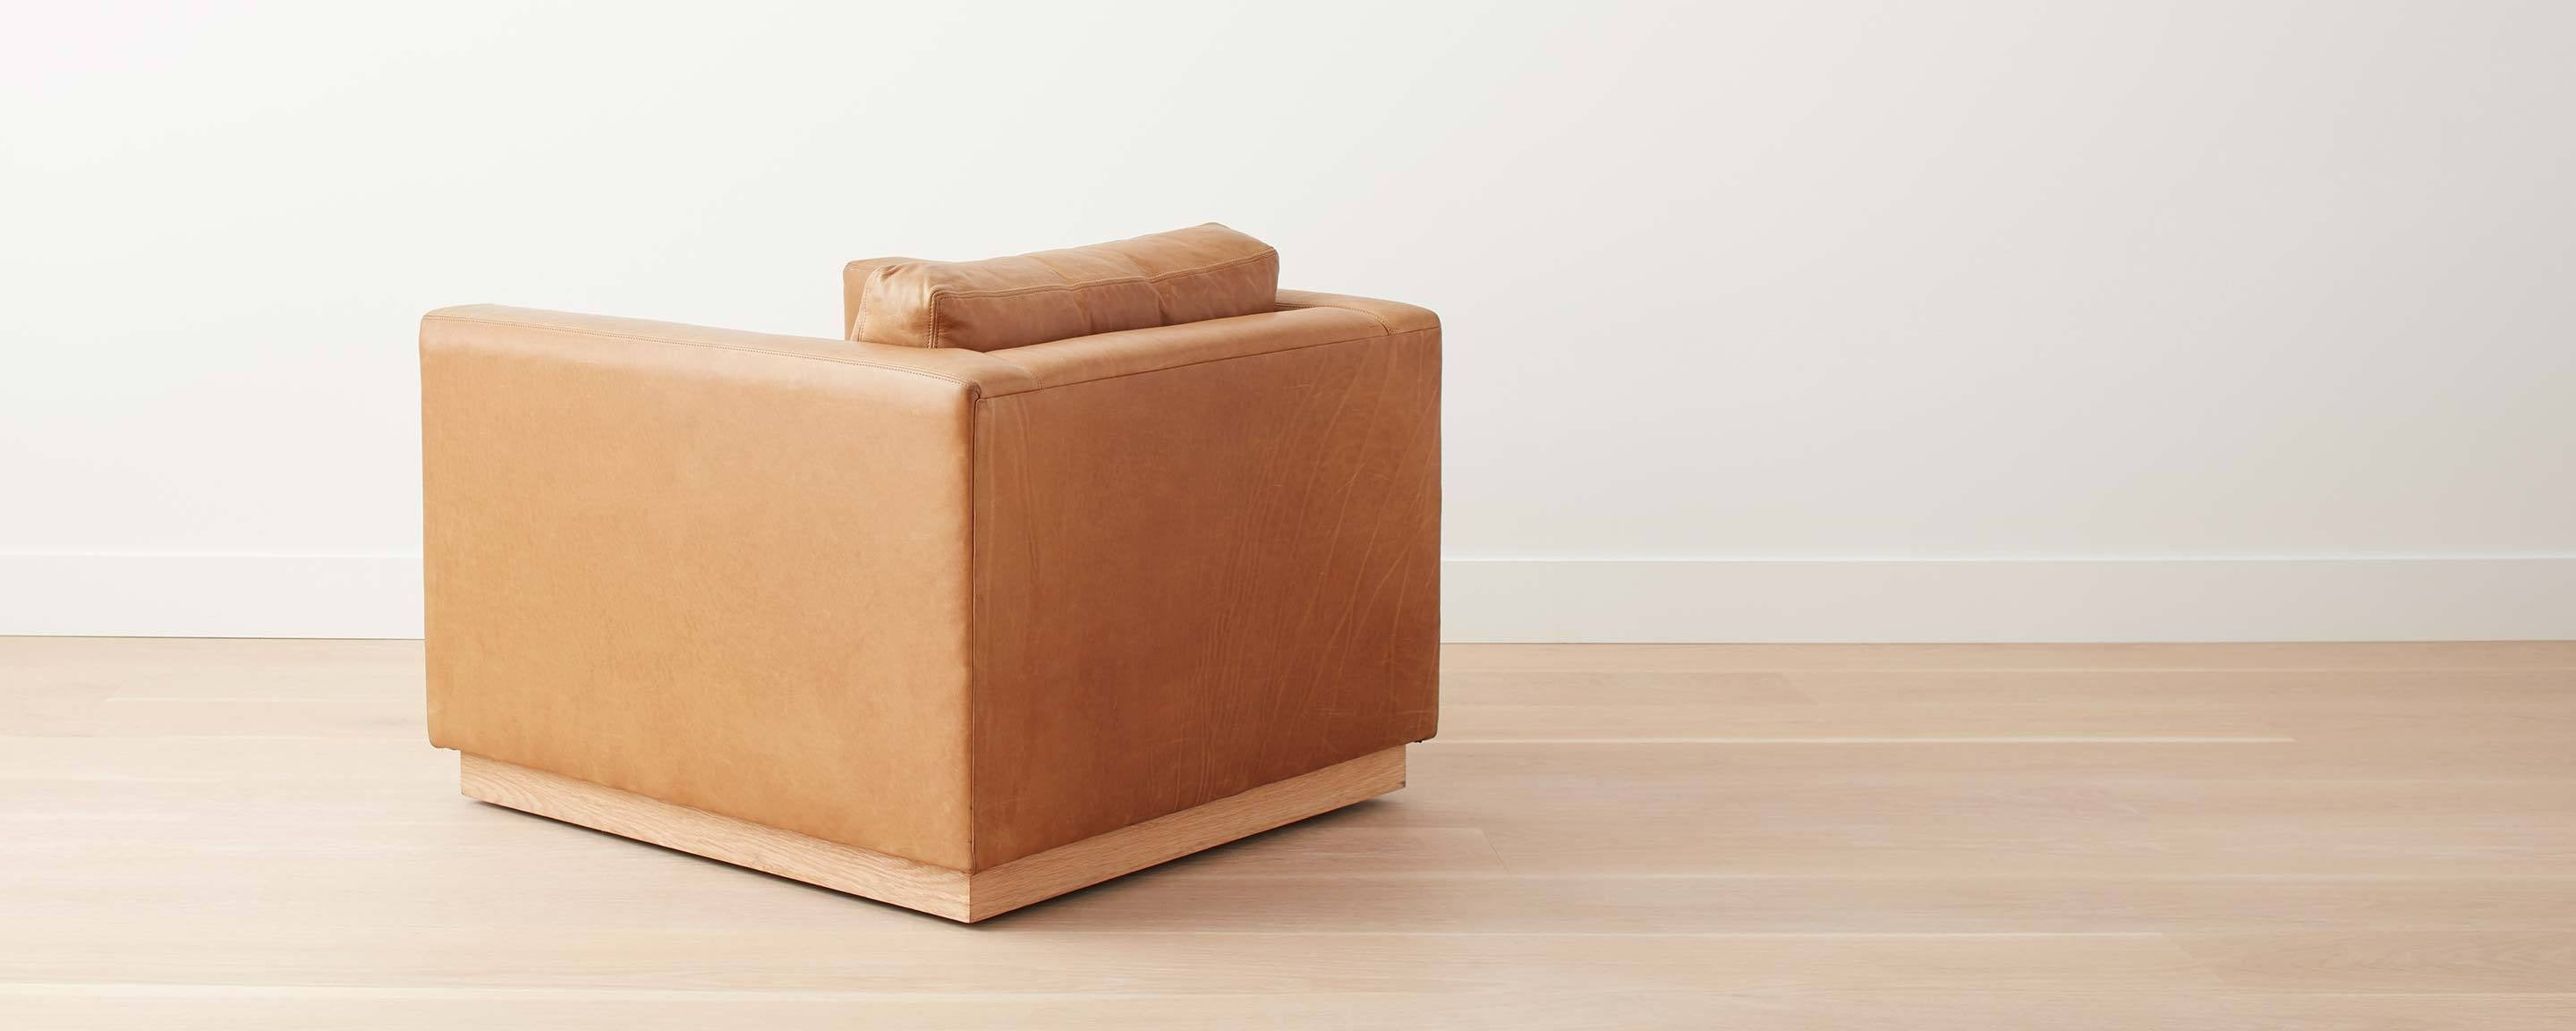 the homenature halsey swivel chair - floor model